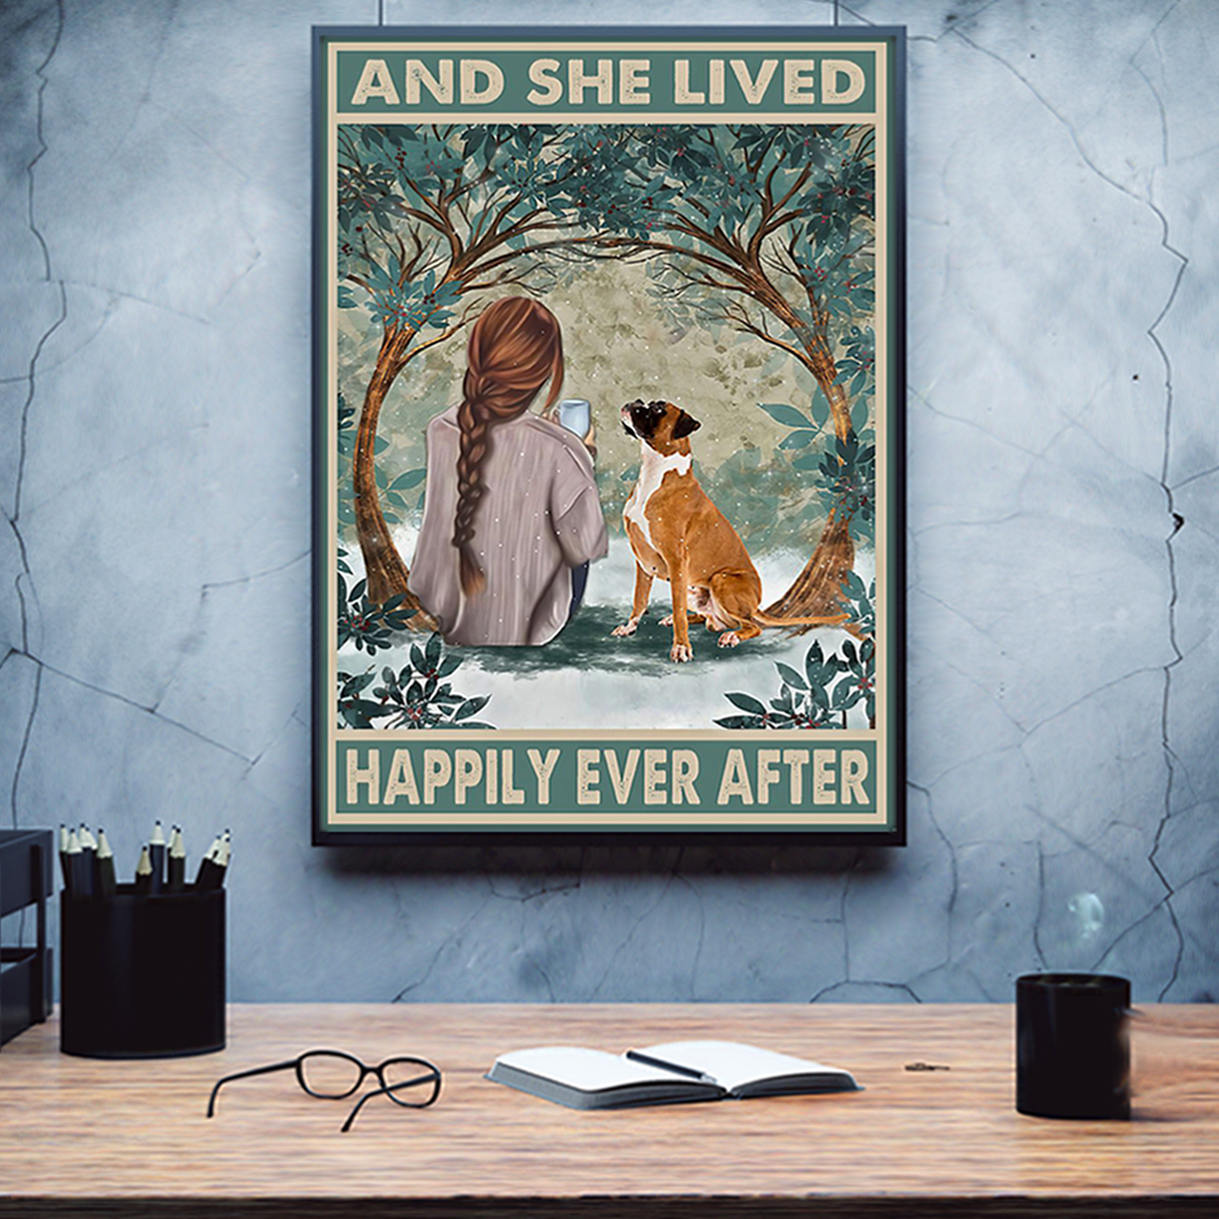 Boxer and she lived happily ever after poster A2